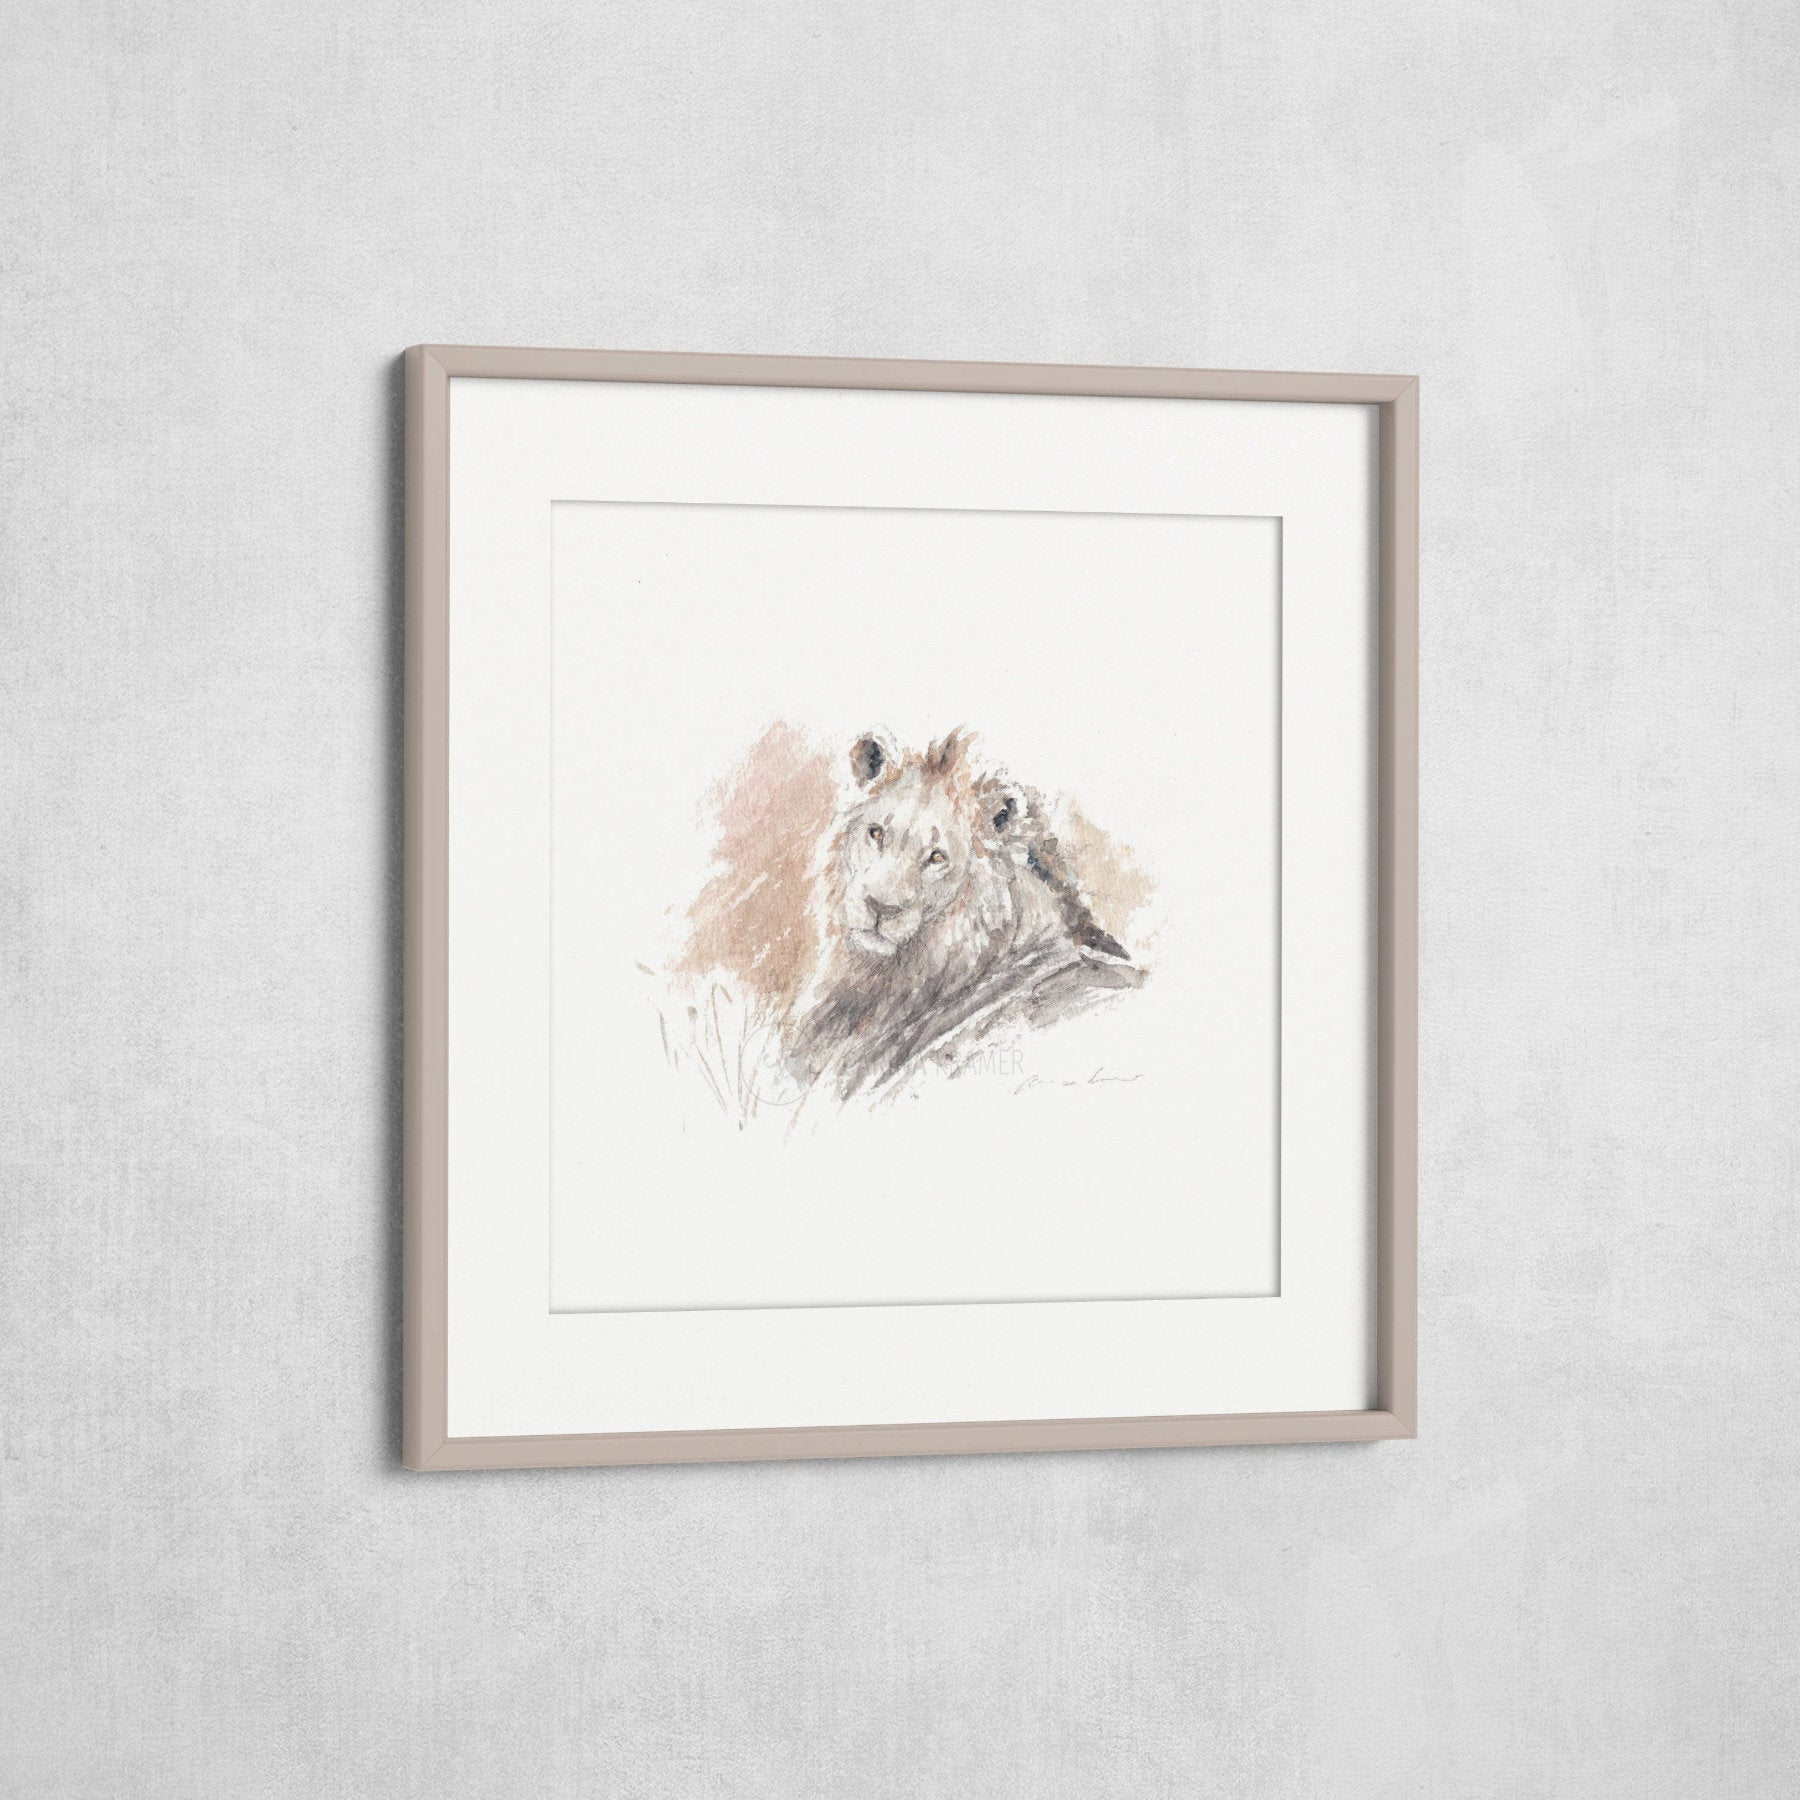 Male Lion 1 - Fine-Art Print (Square) - Carina Kramer - Fine Art, Fine Art Print, Wildlife Art/ Animal Painting